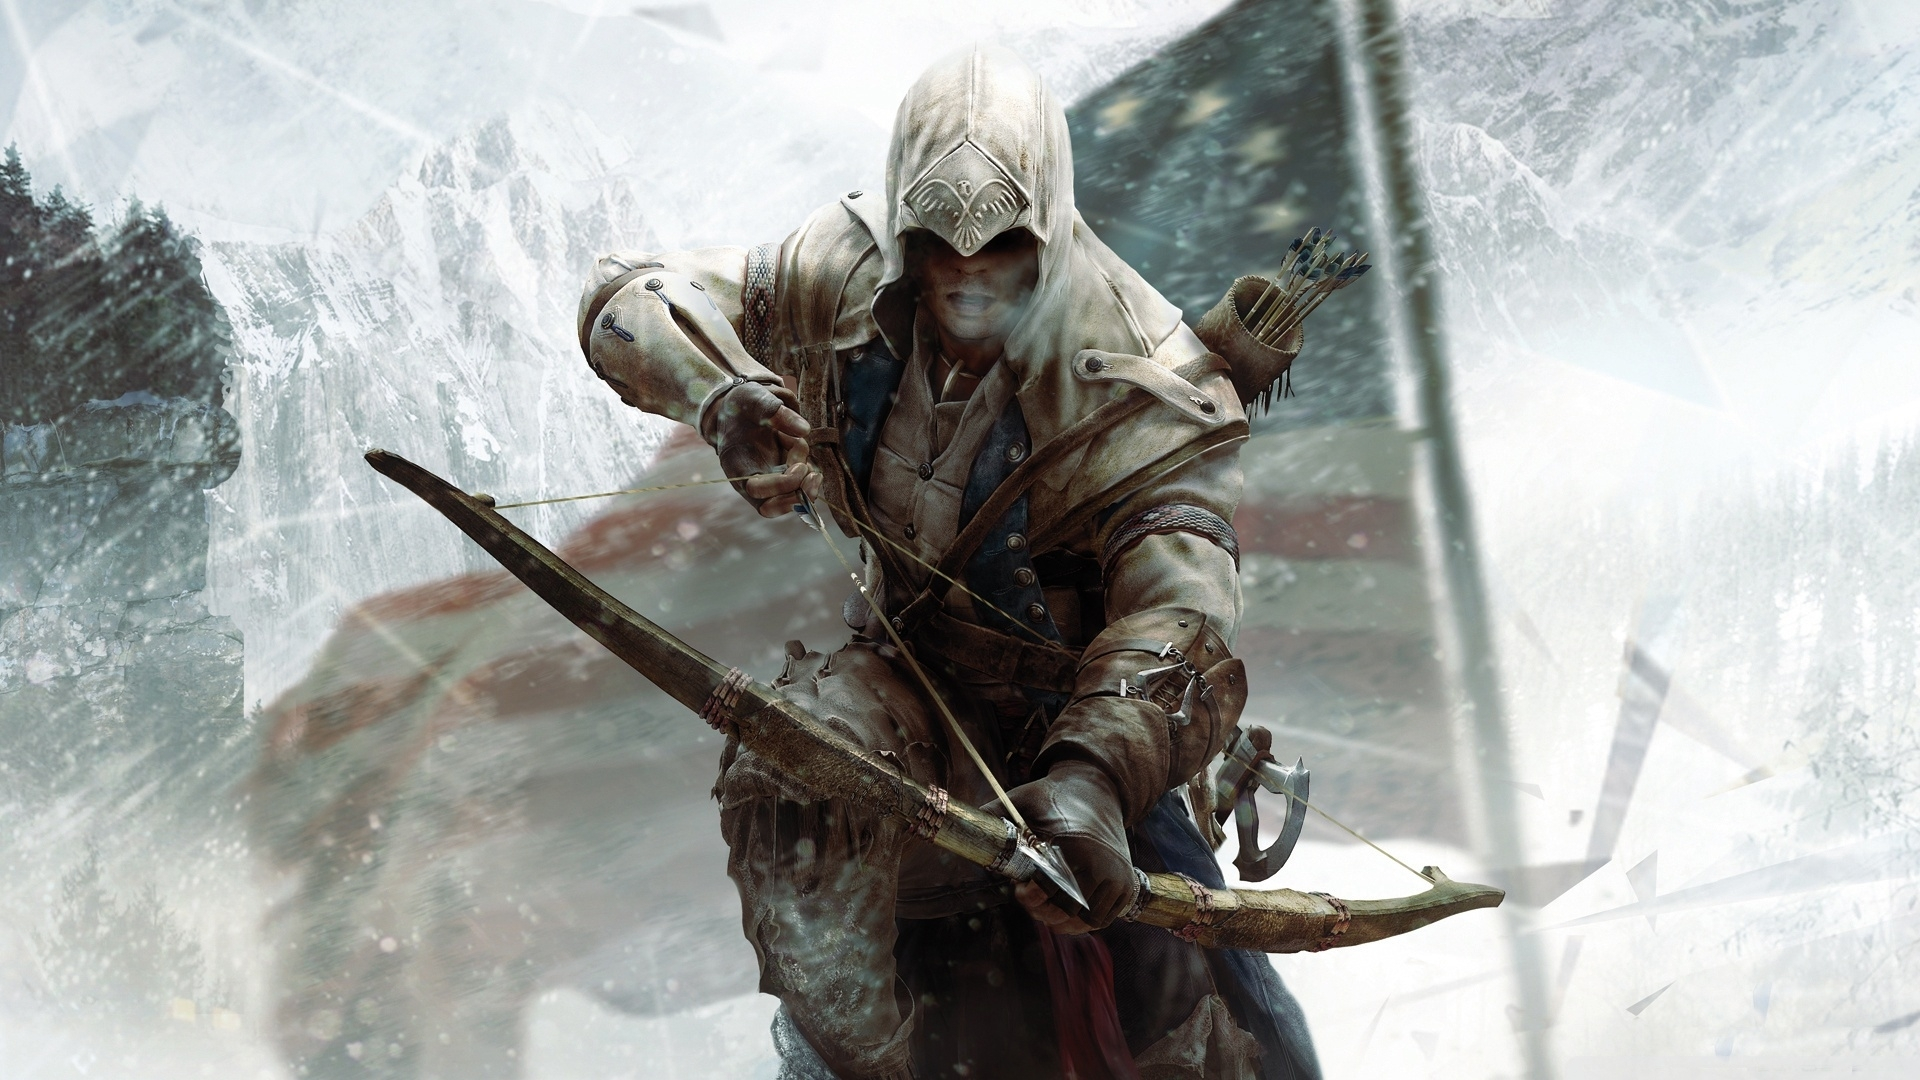 assassins creed 3 connor bow-wallpaper-1920x1080 - 10 000 fonds d